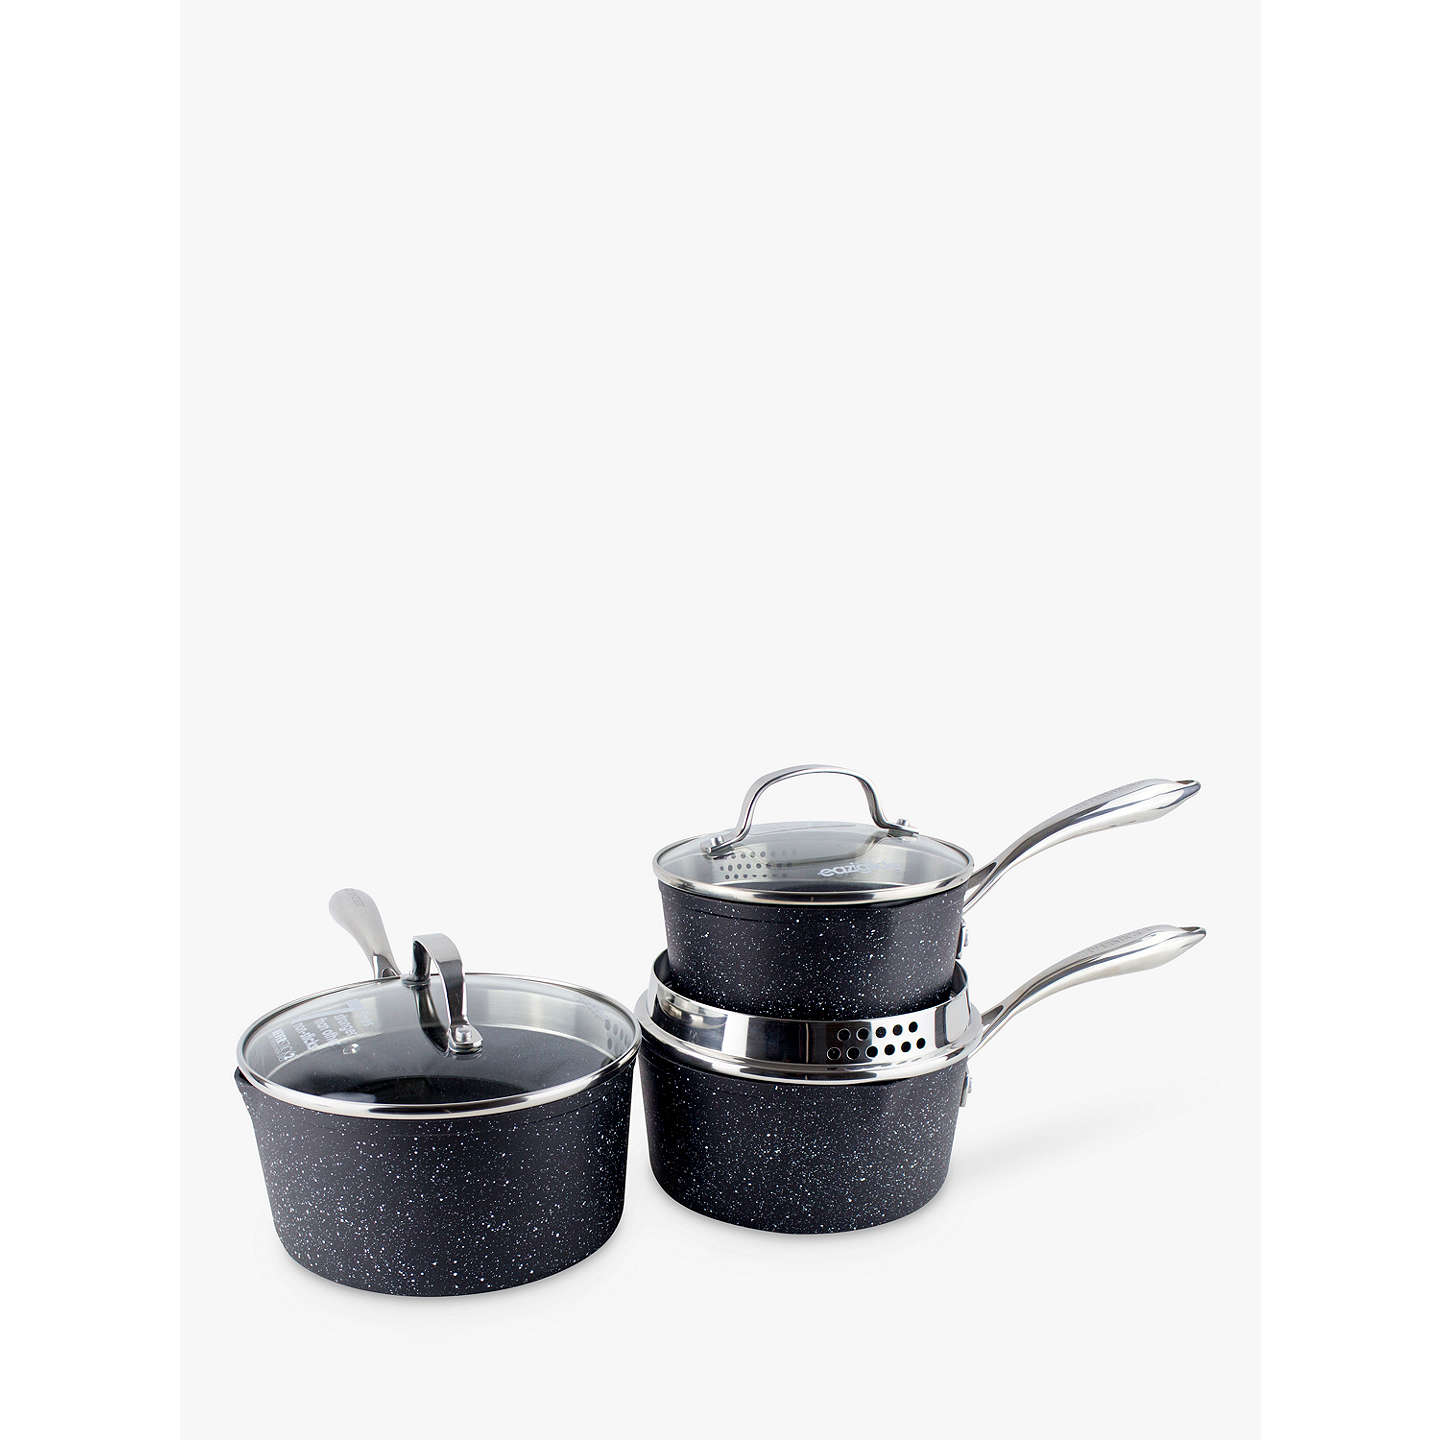 BuyEaziglide Neverstick2 Saucepan Set, 3 Pieces Online at johnlewis.com